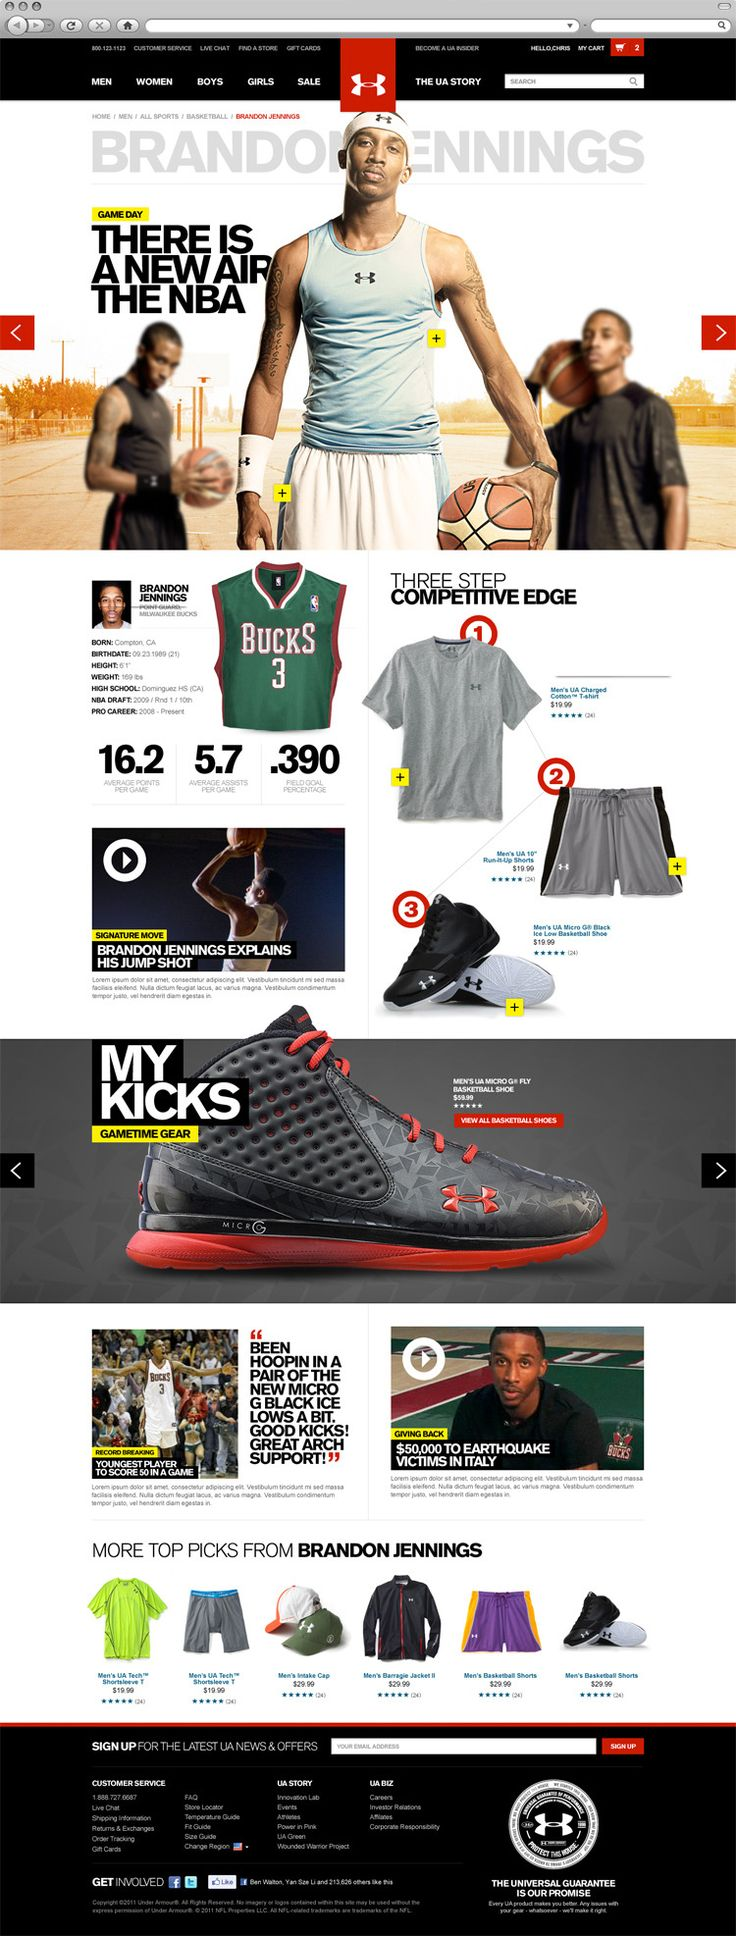 The 2011 redesign of Under Armour's website.